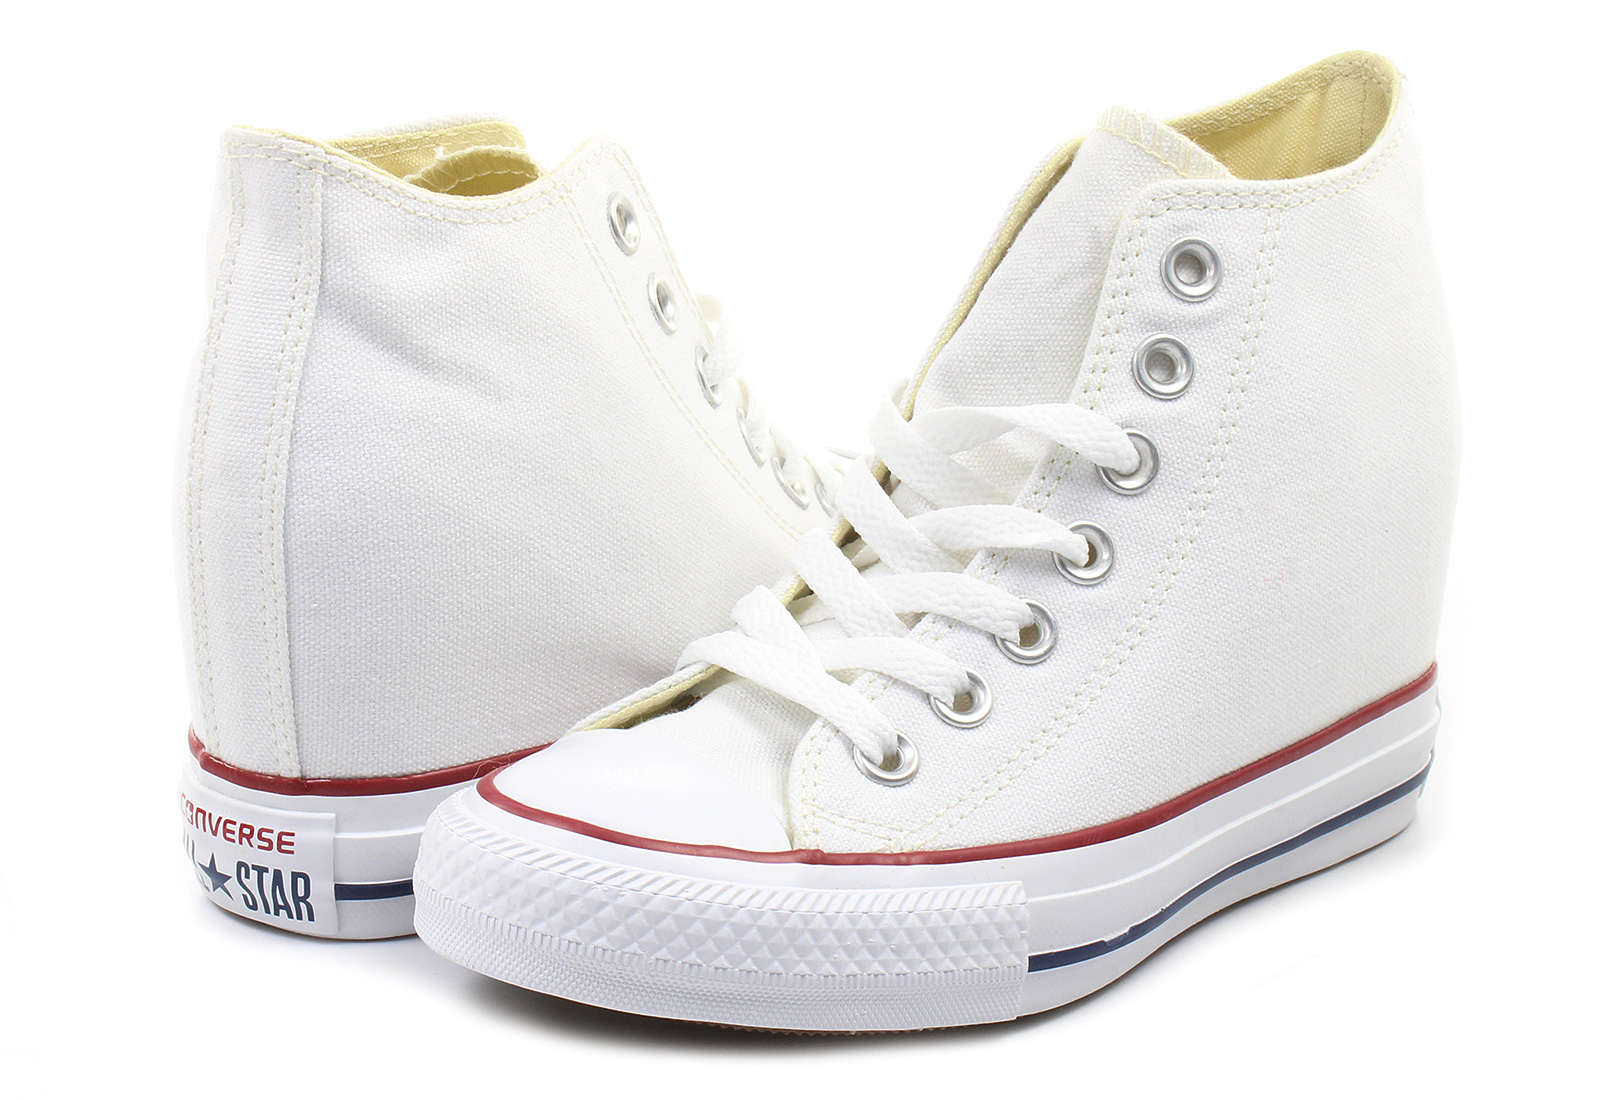 0f1bbf13be87 Converse Sneakers - Chuck Taylor All Star Lux Mid Hi - 547200C ...